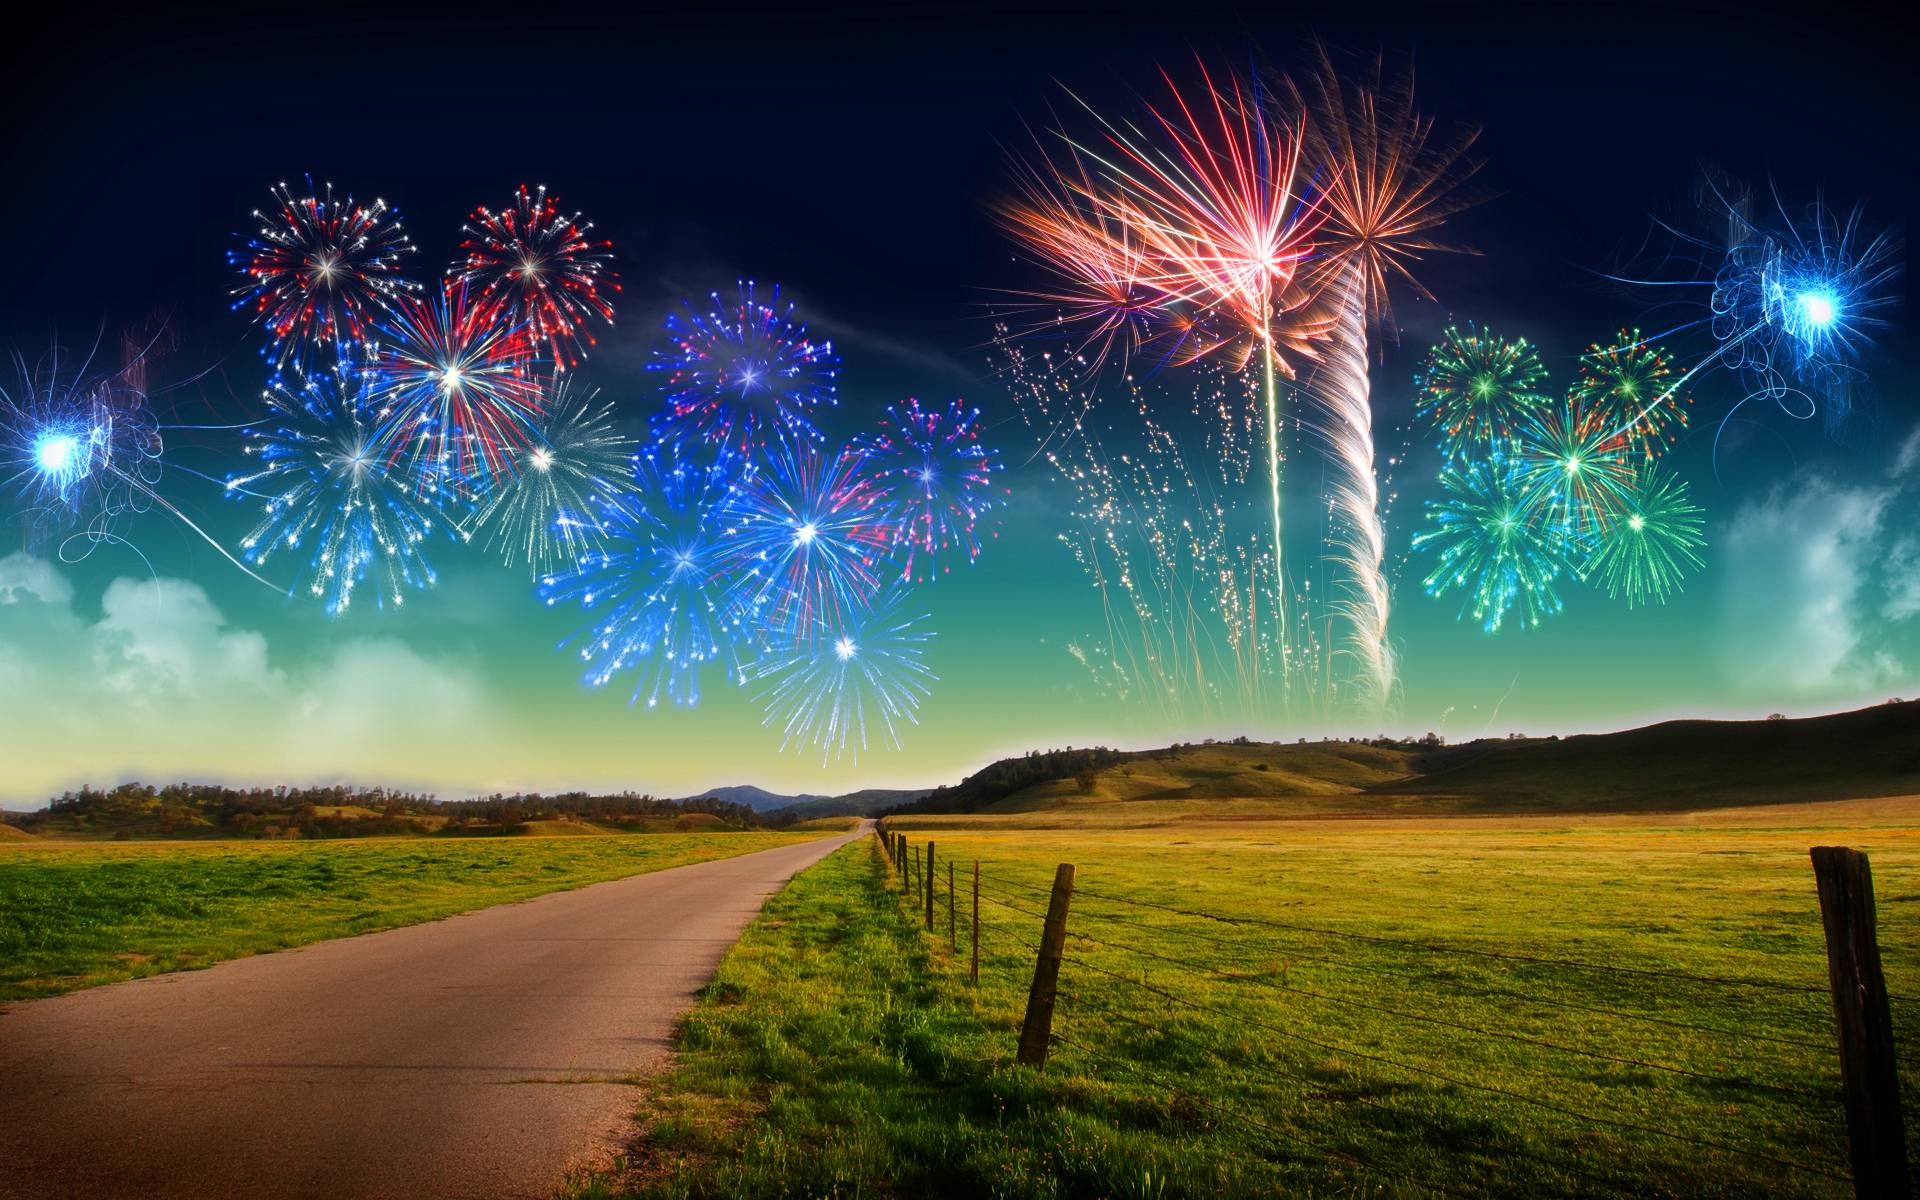 happy new year 2015 wallpapers image Download free